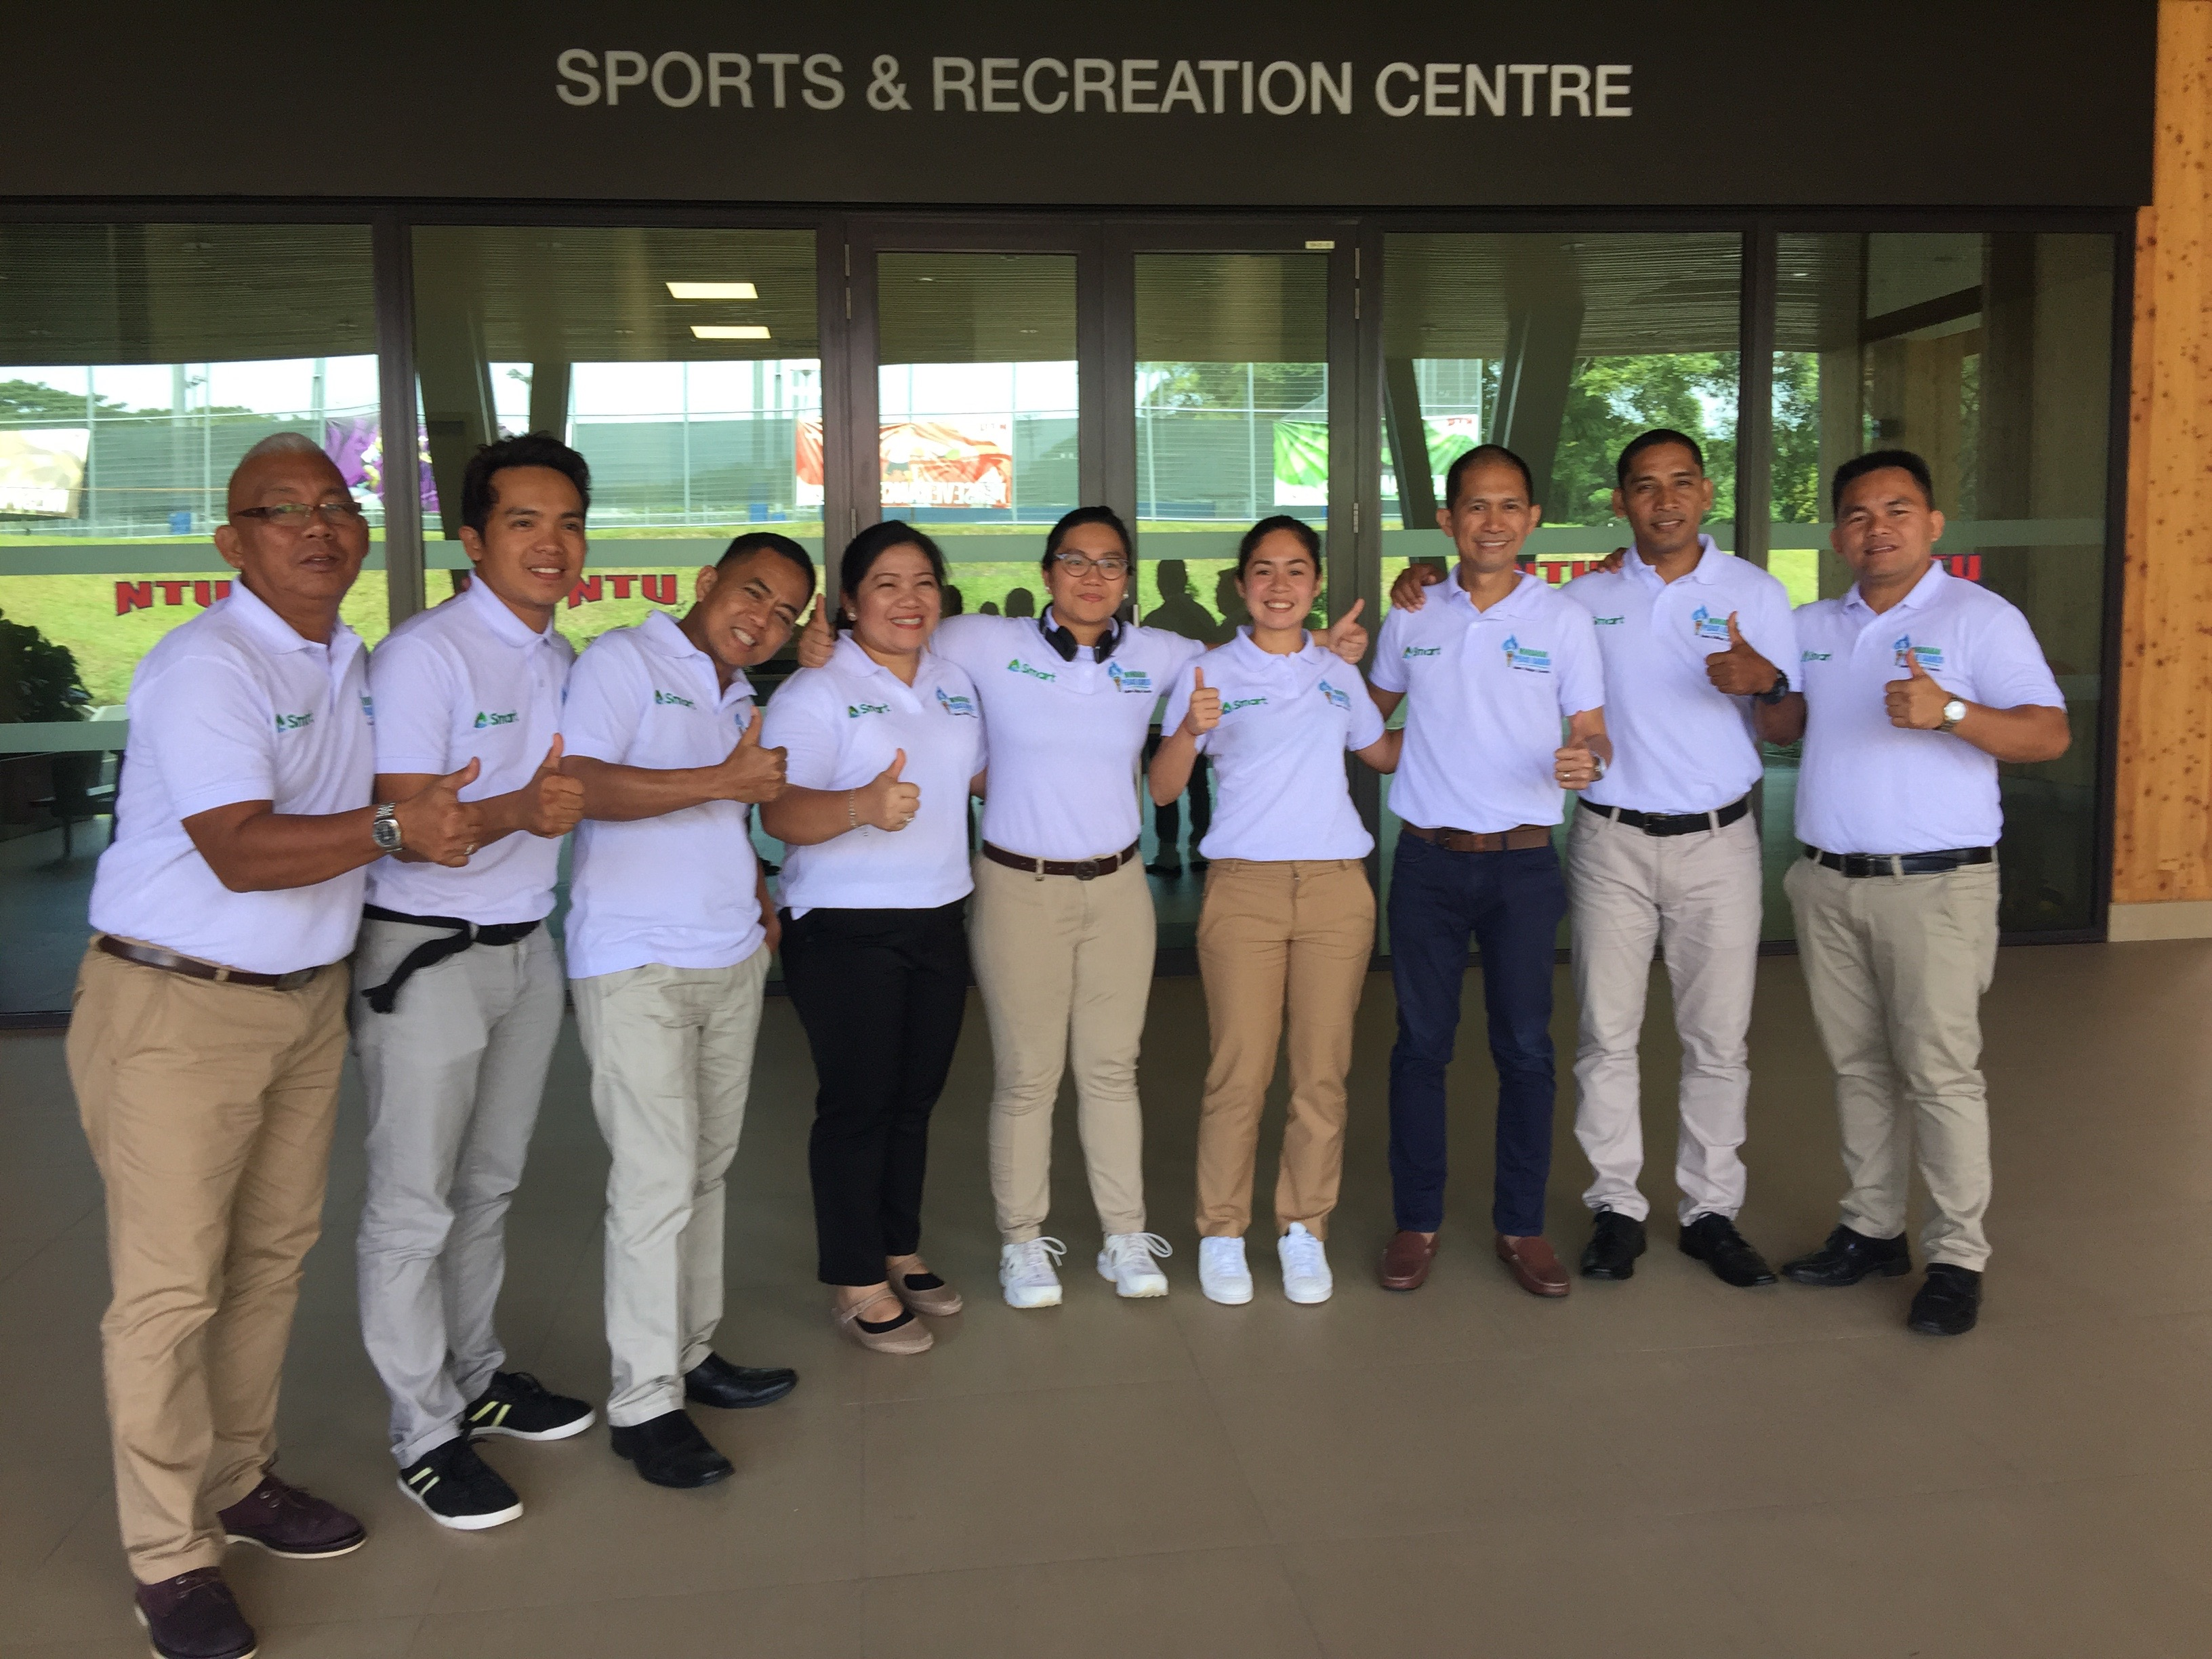 Layao-Singapore-Sports-Recreation-Centre-MPG-Mindanao-Peace-Games